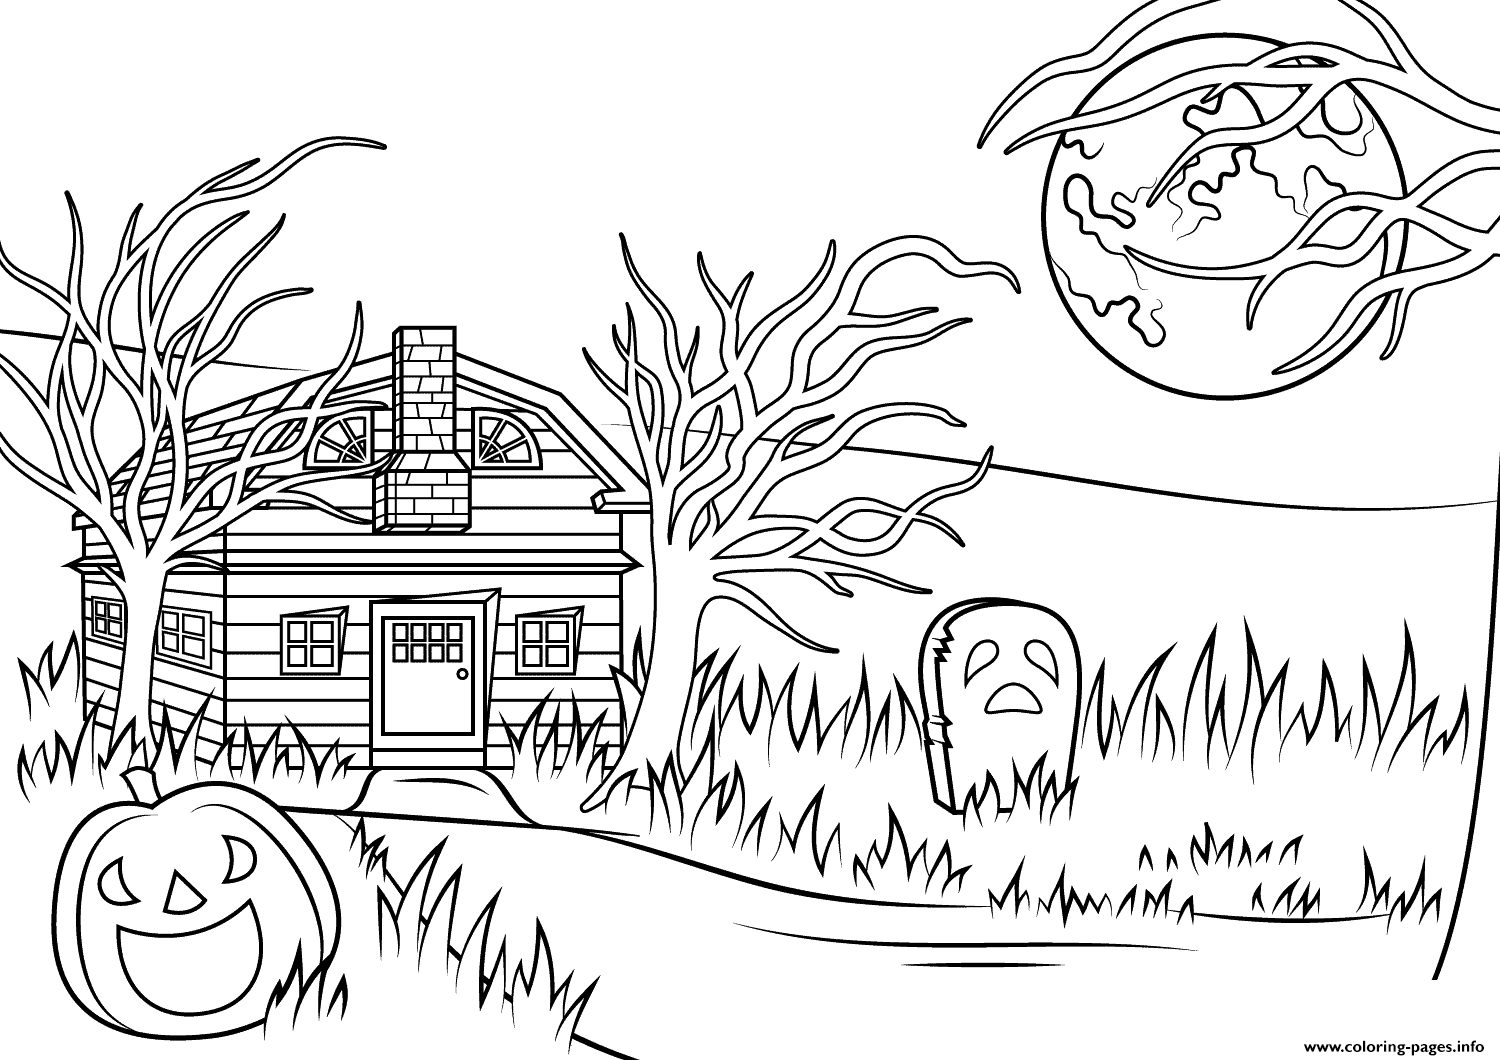 house coloring pages printable - haunted house halloween printable coloring pages book